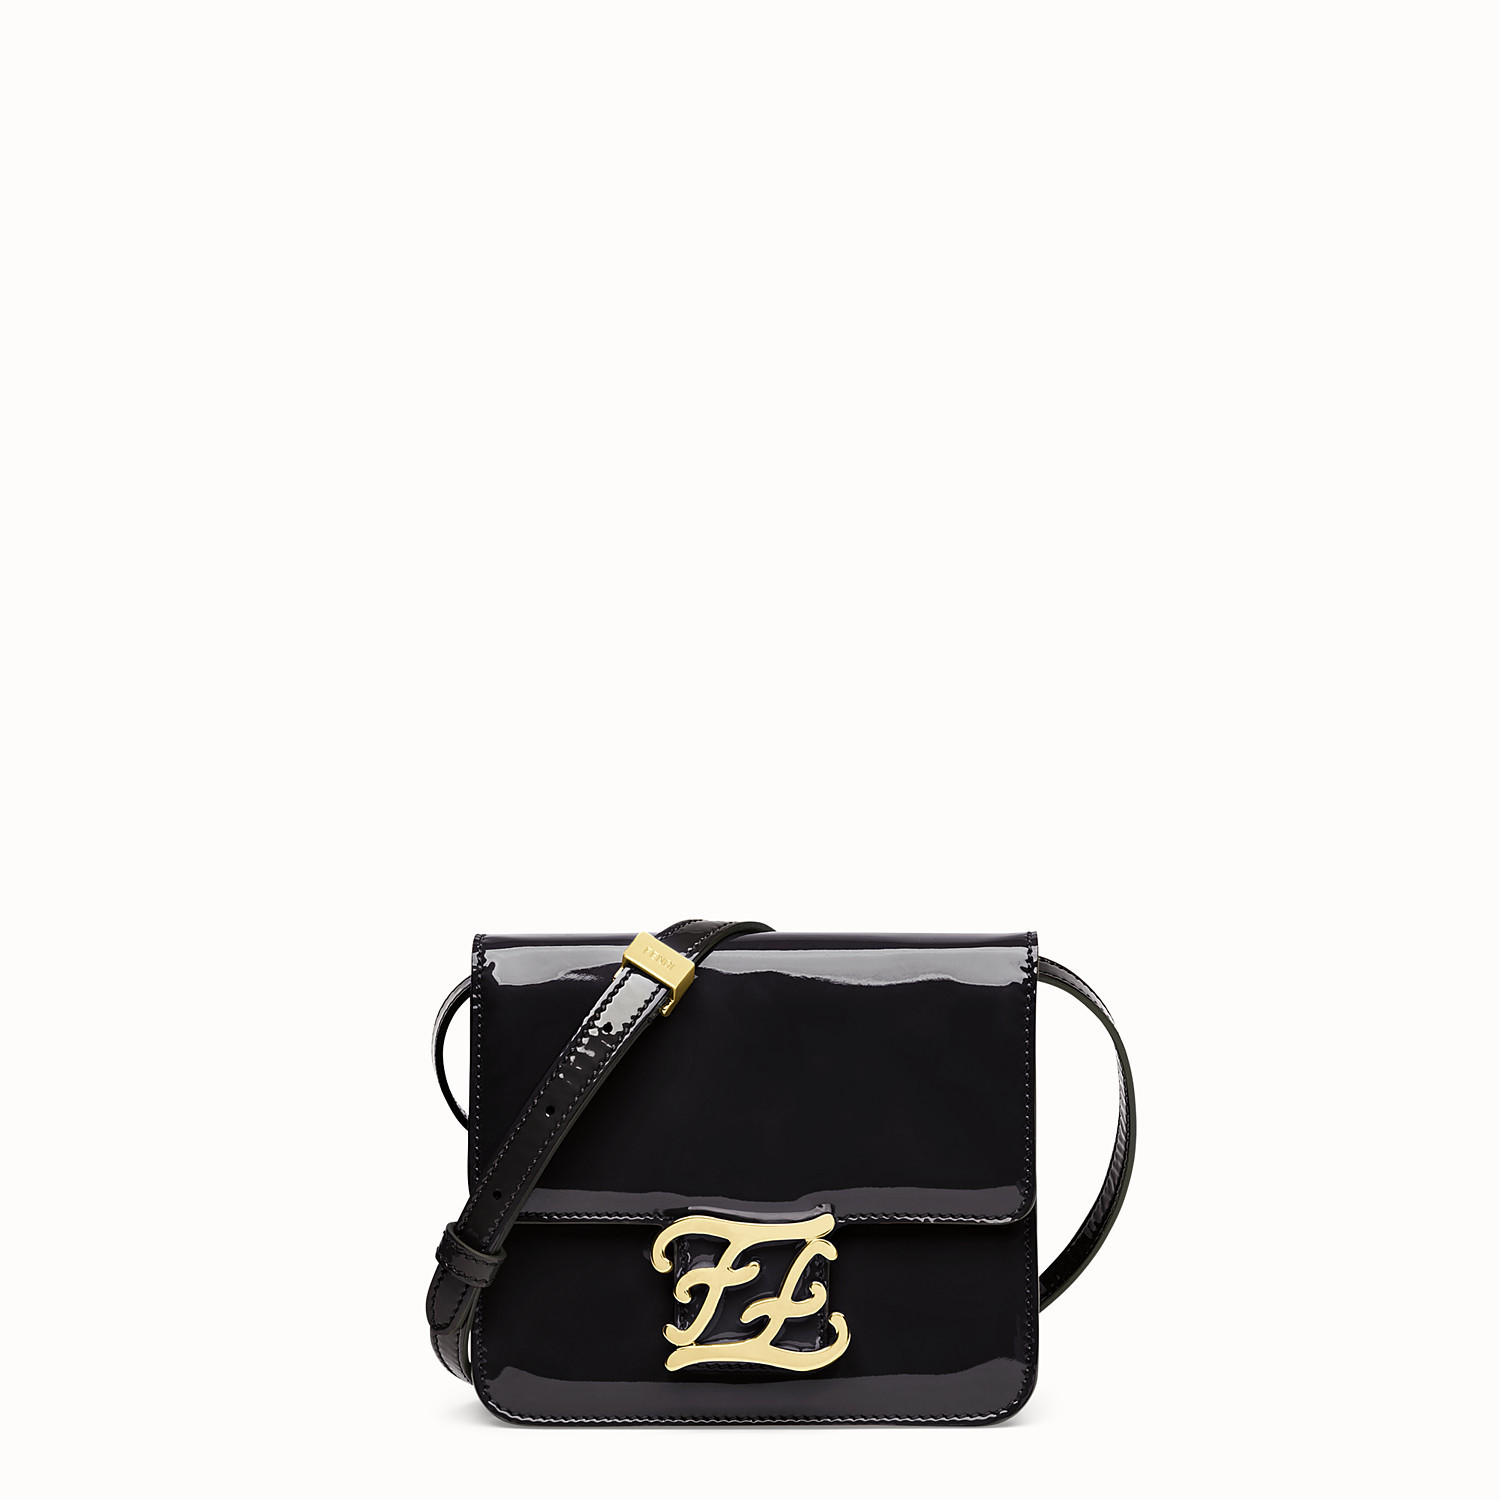 shop fendi karligraphy